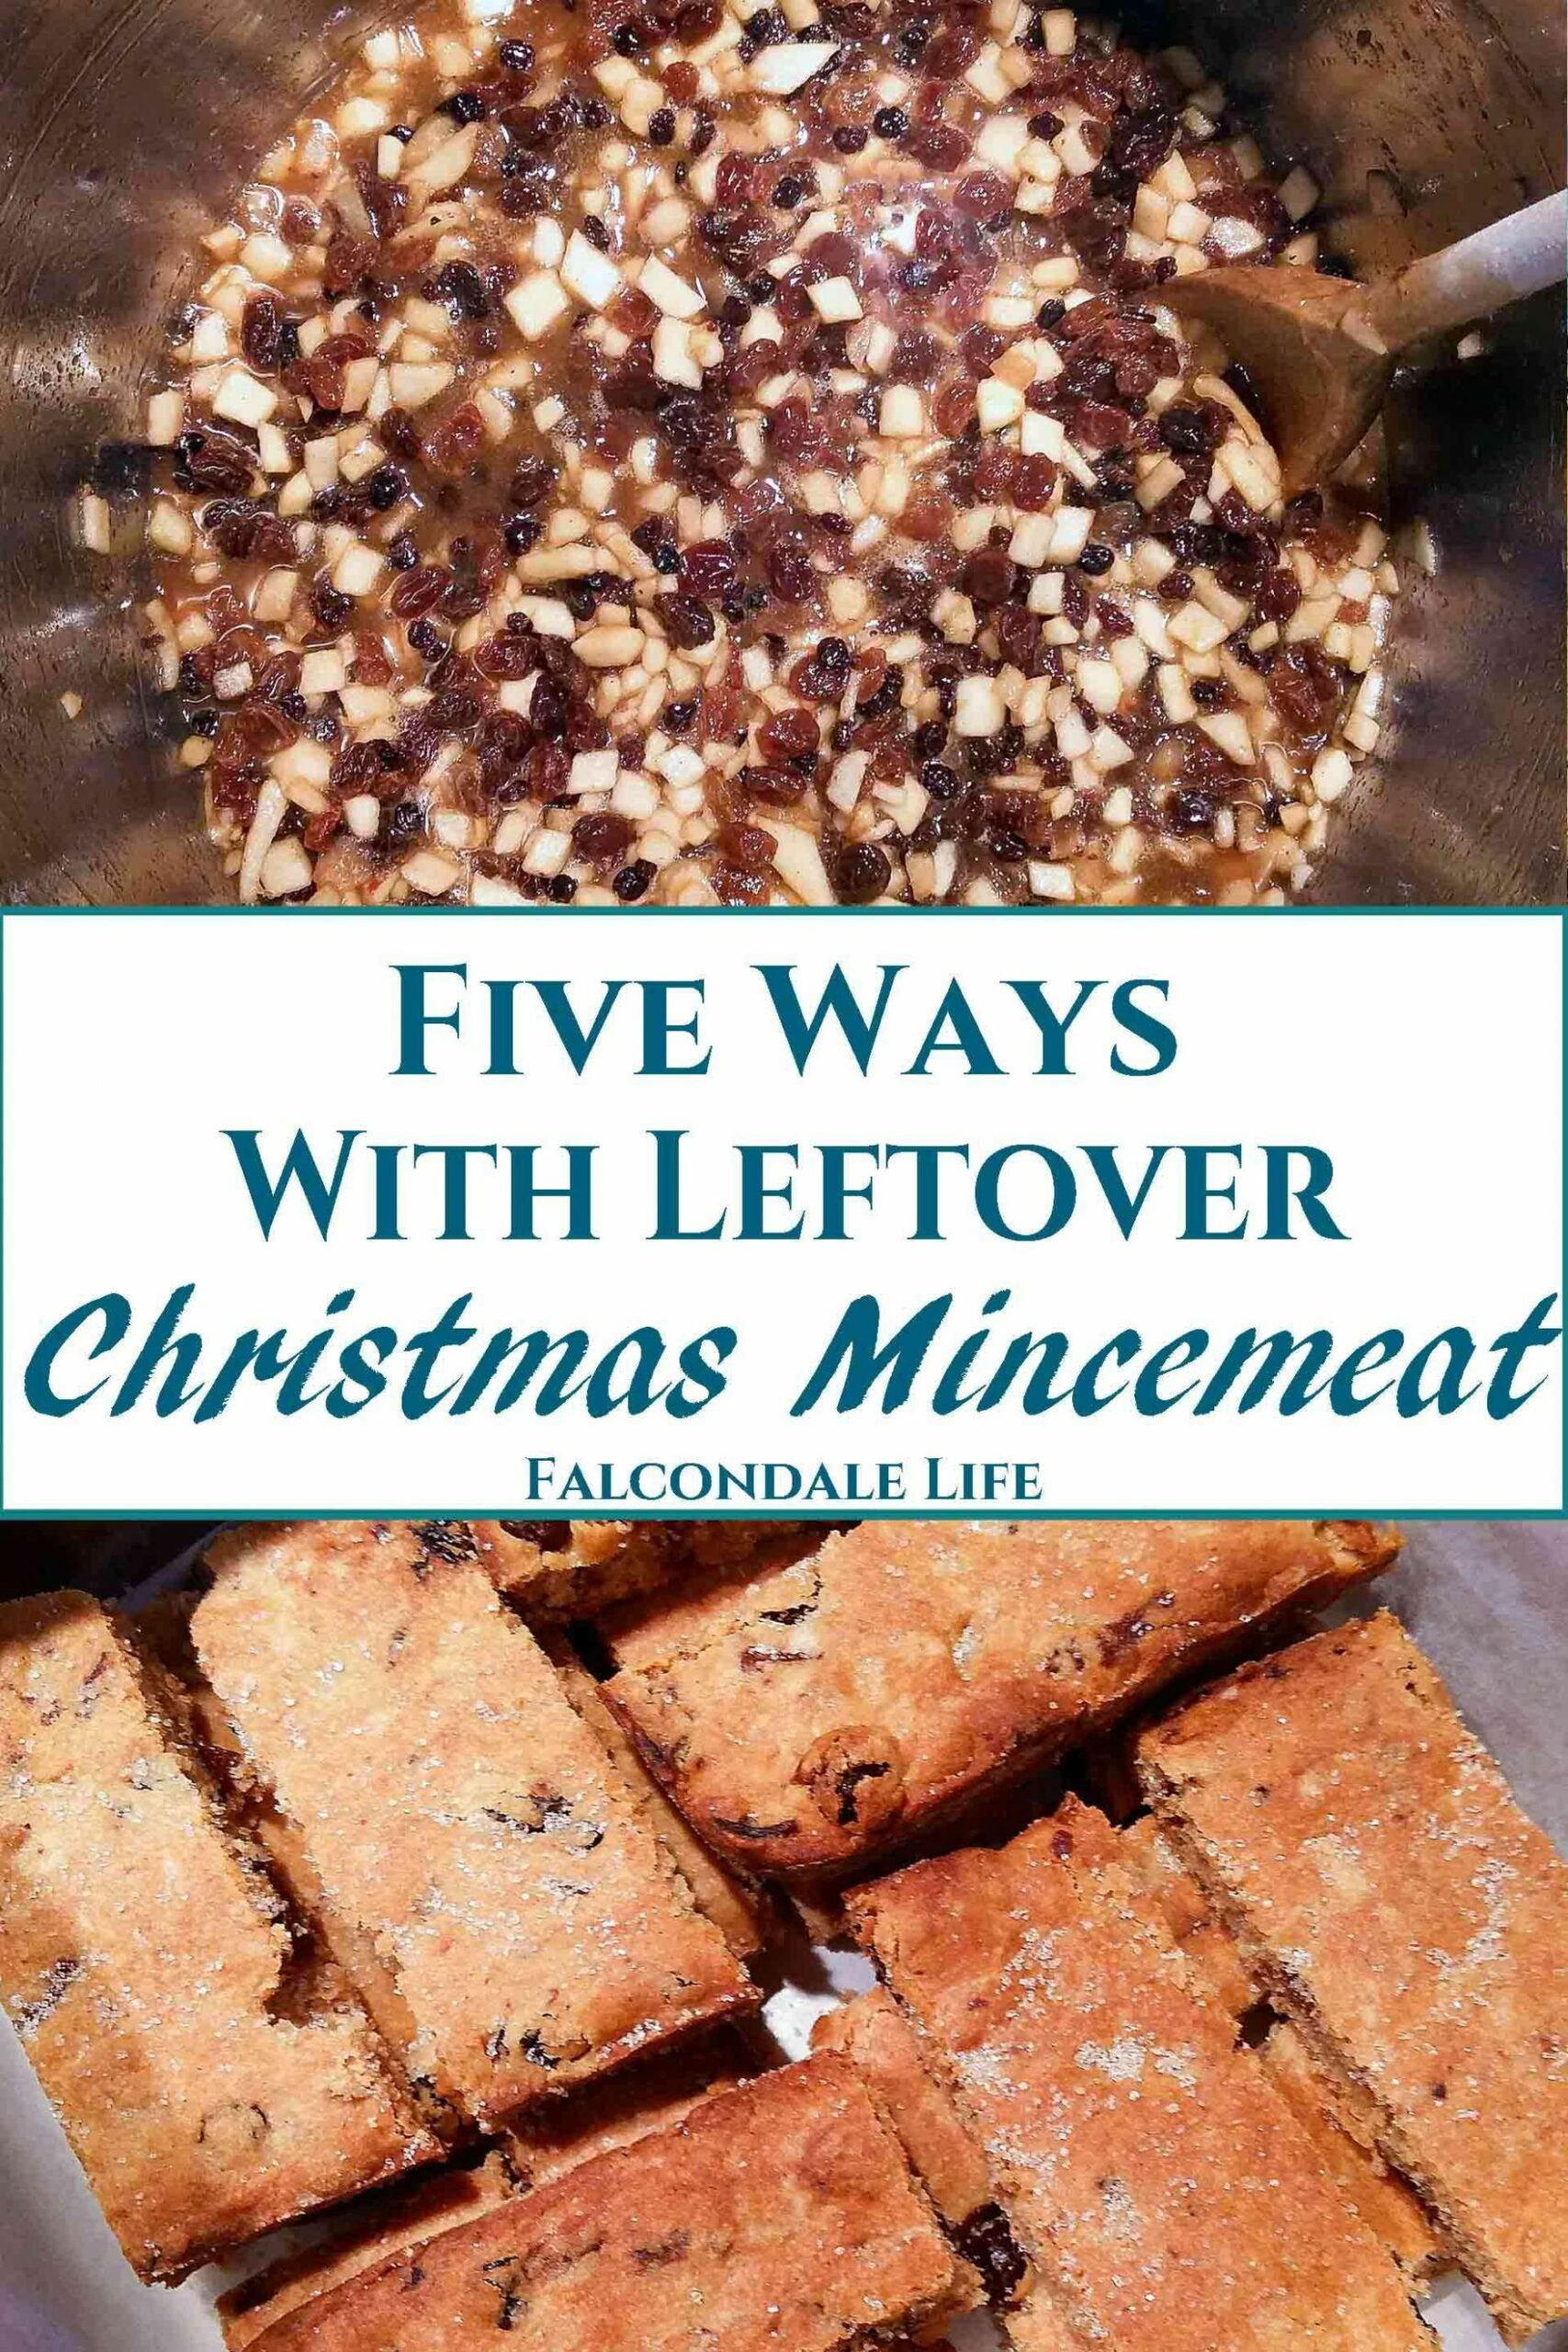 11 Ways With Leftover Christmas Mincemeat - Falcondale Life - Recipes Using Leftover Xmas Cake